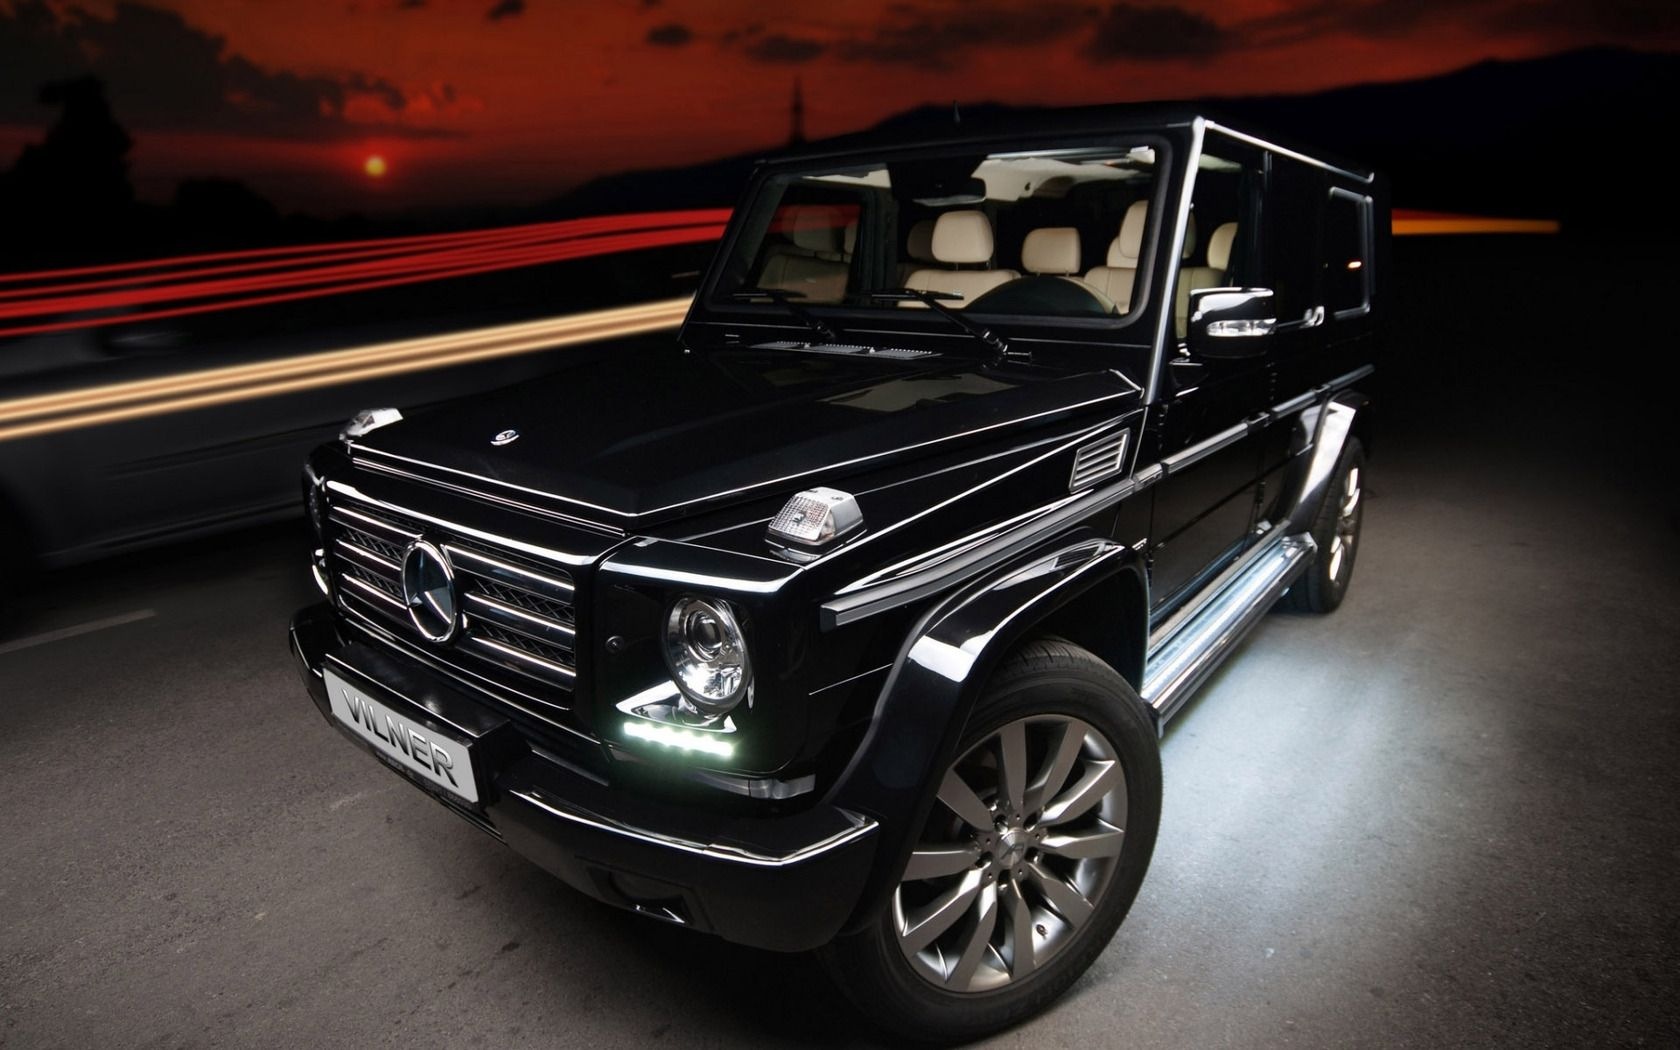 The vilner tuned mercedes g class gets an upgraded interior with high quality beige leather and black alcantara surfaces throughout the car